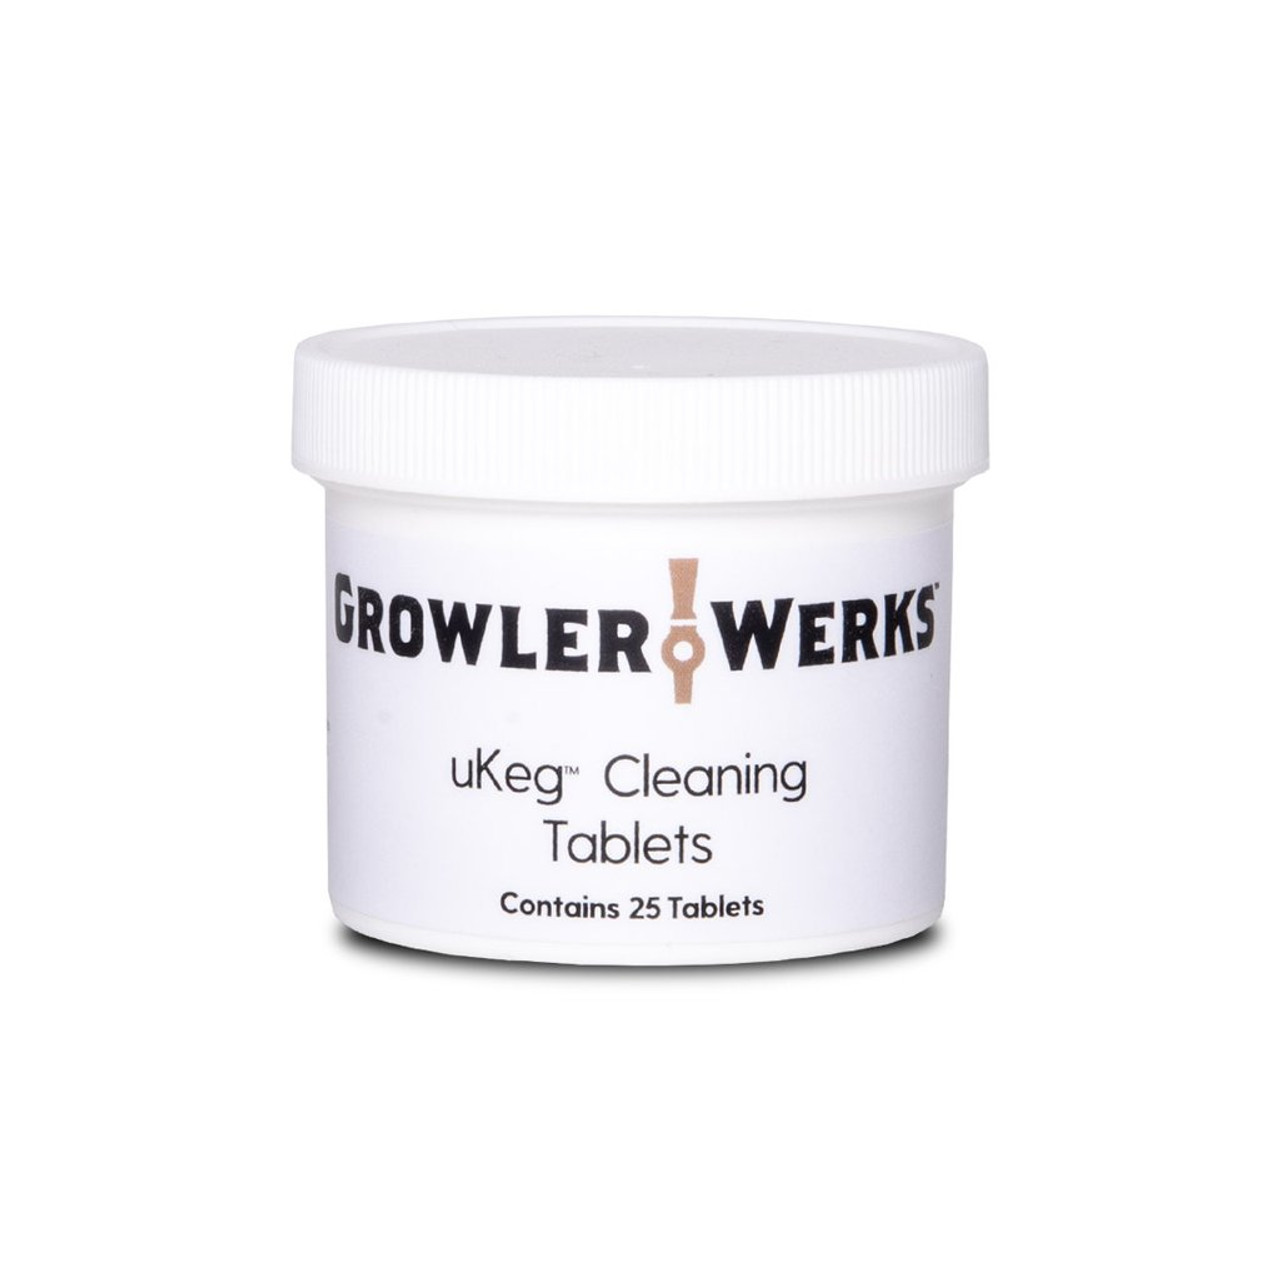 UKEG CLEANING TABLETS